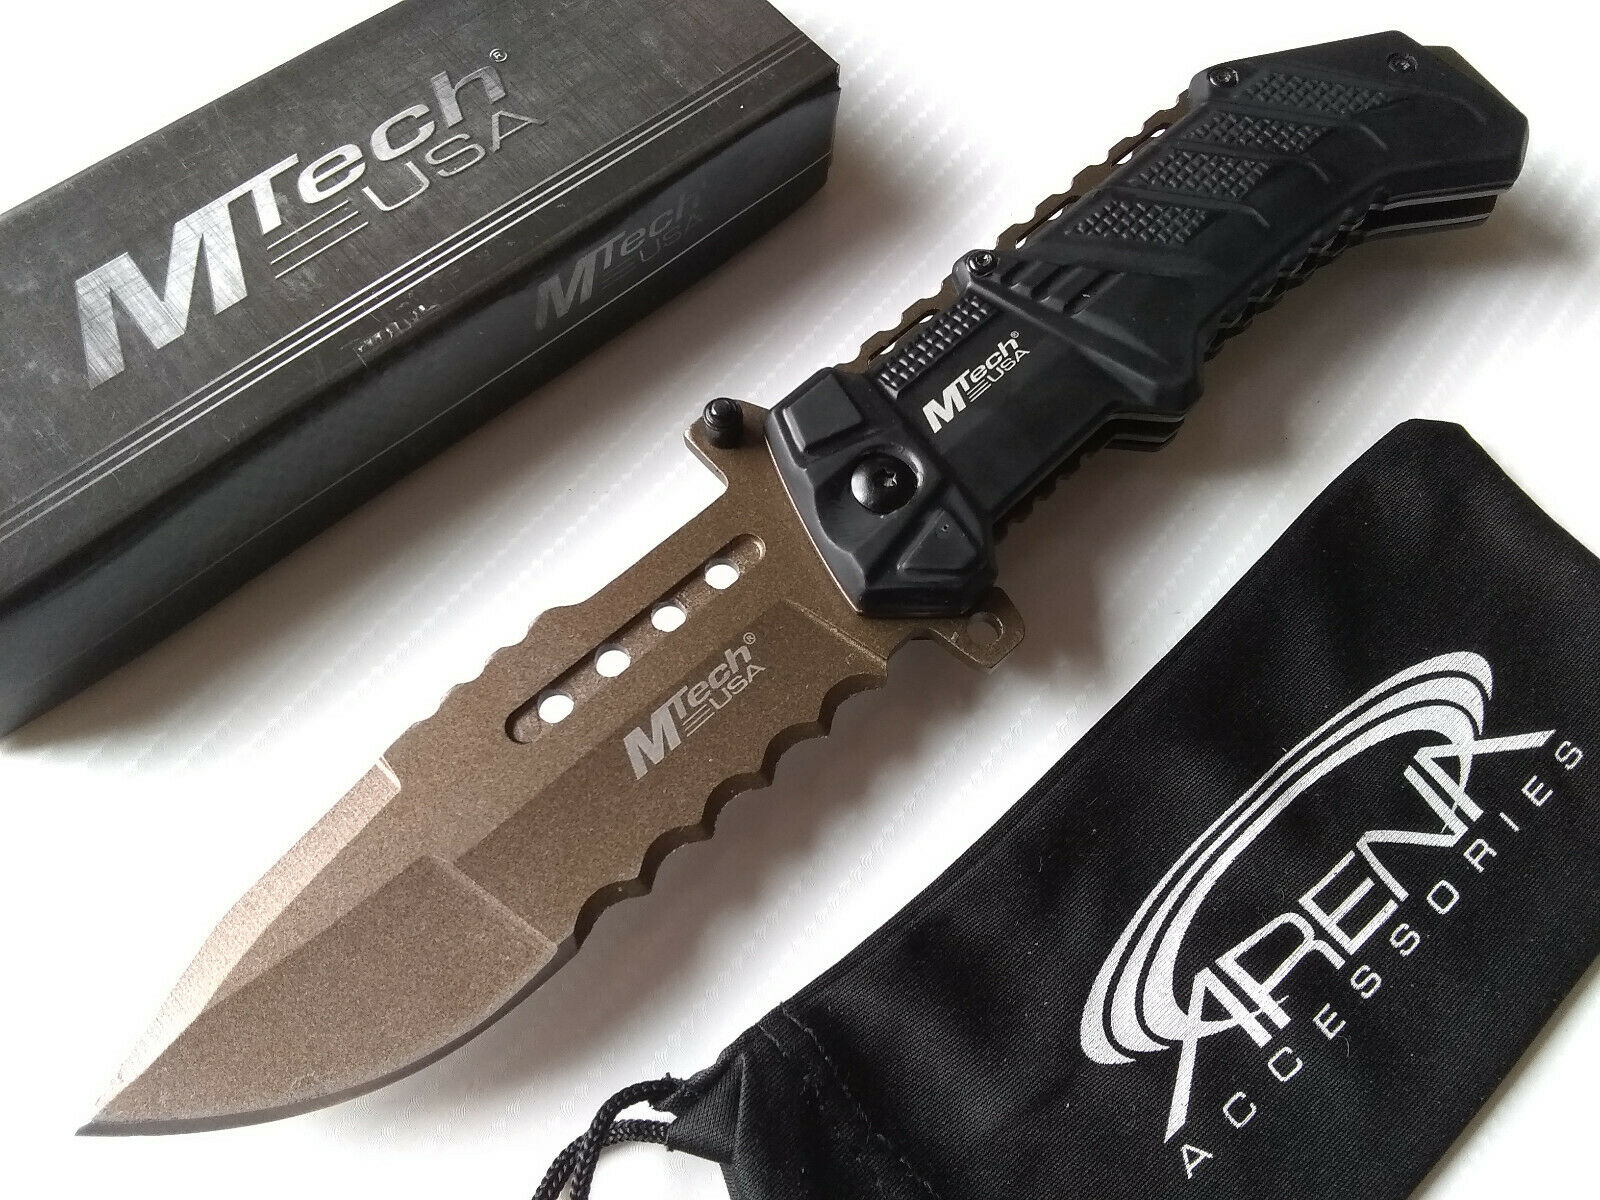 MTech Black Ballistic Tactical Military Spring Assisted Open Pocket Knife with Bronze Ti Coated Blade EDC